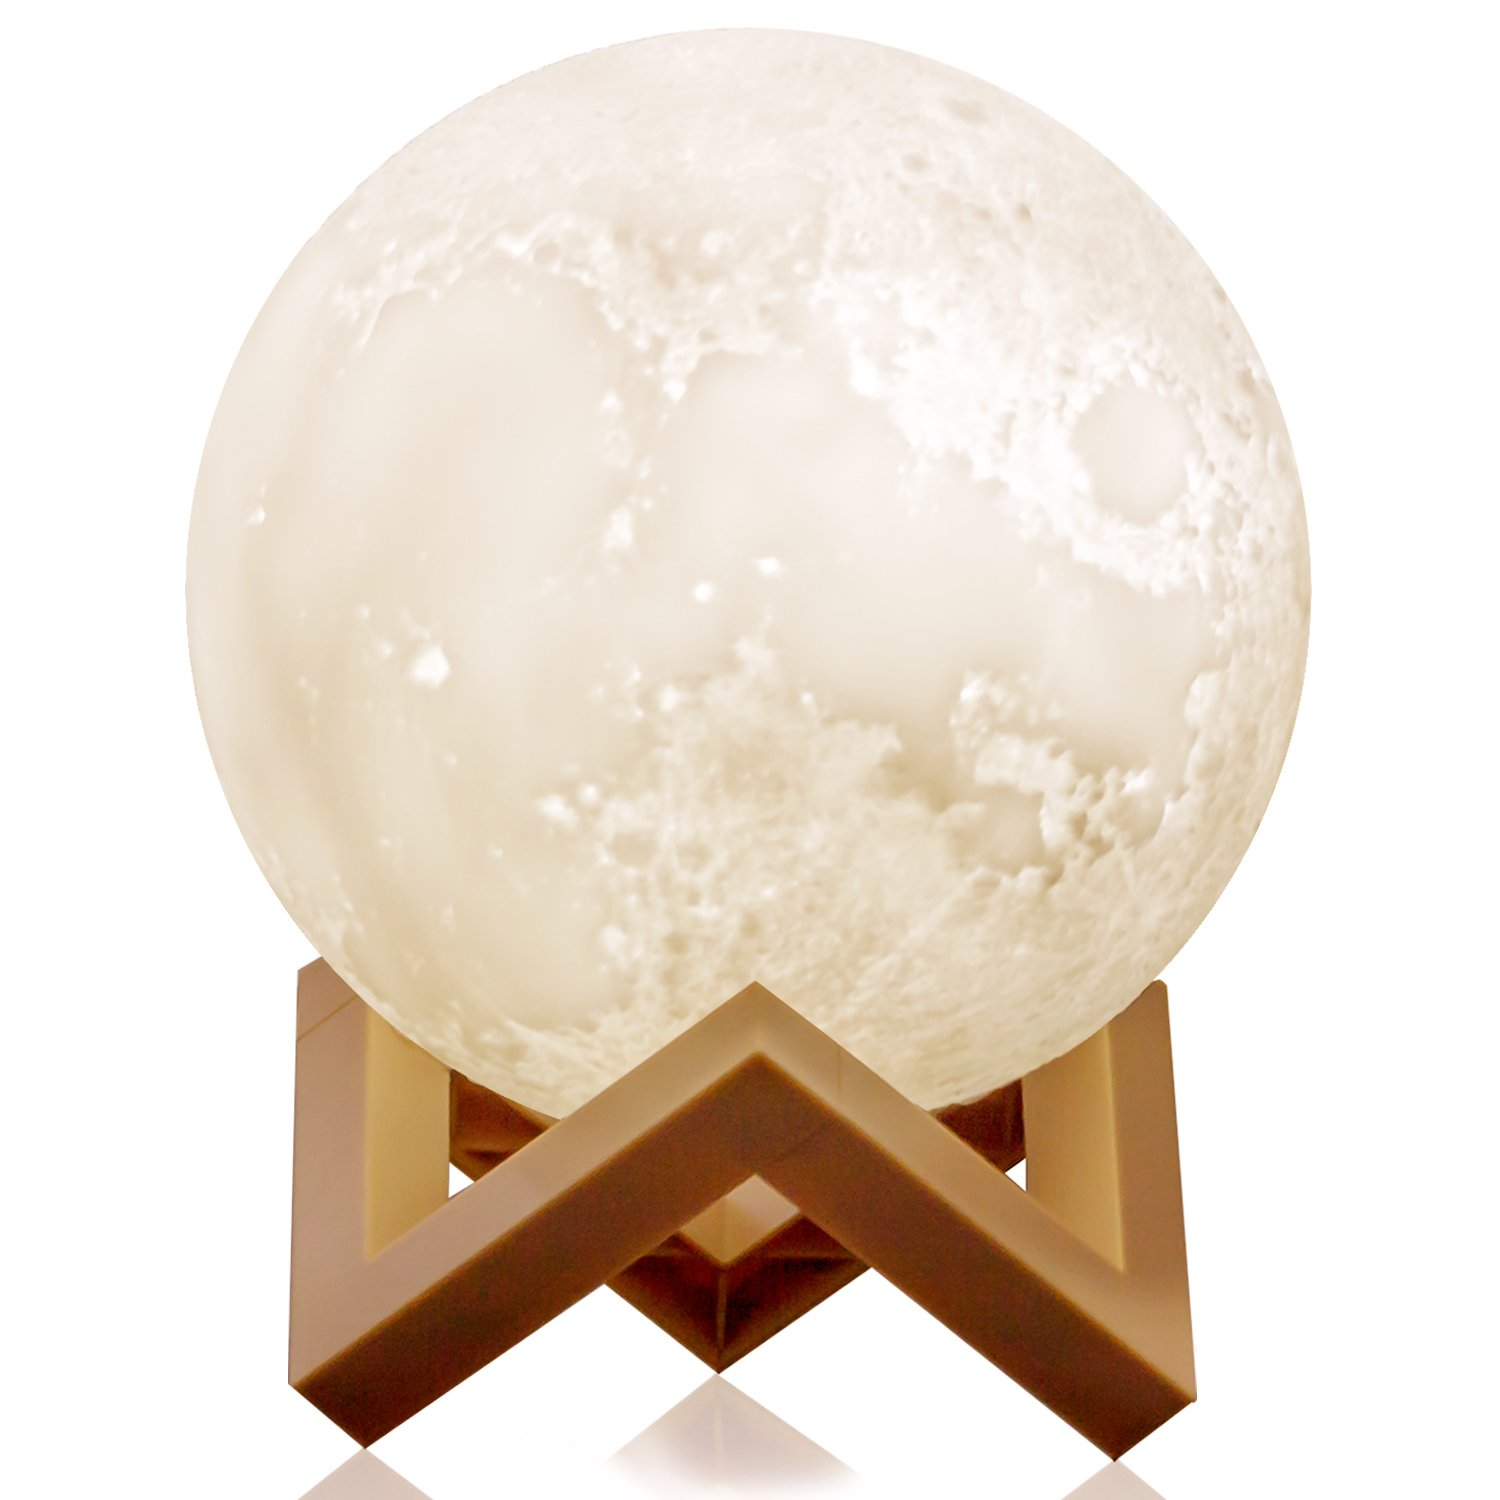 Ehobroc Moon Lamp, 3D Printing Moon Globe Light 5.9 Inch Glowing Moon Lamp Tap Change 3 Colors (Cool/Warm White and Yellow), Decor Moon Light for Kids, Birthday, Bedside